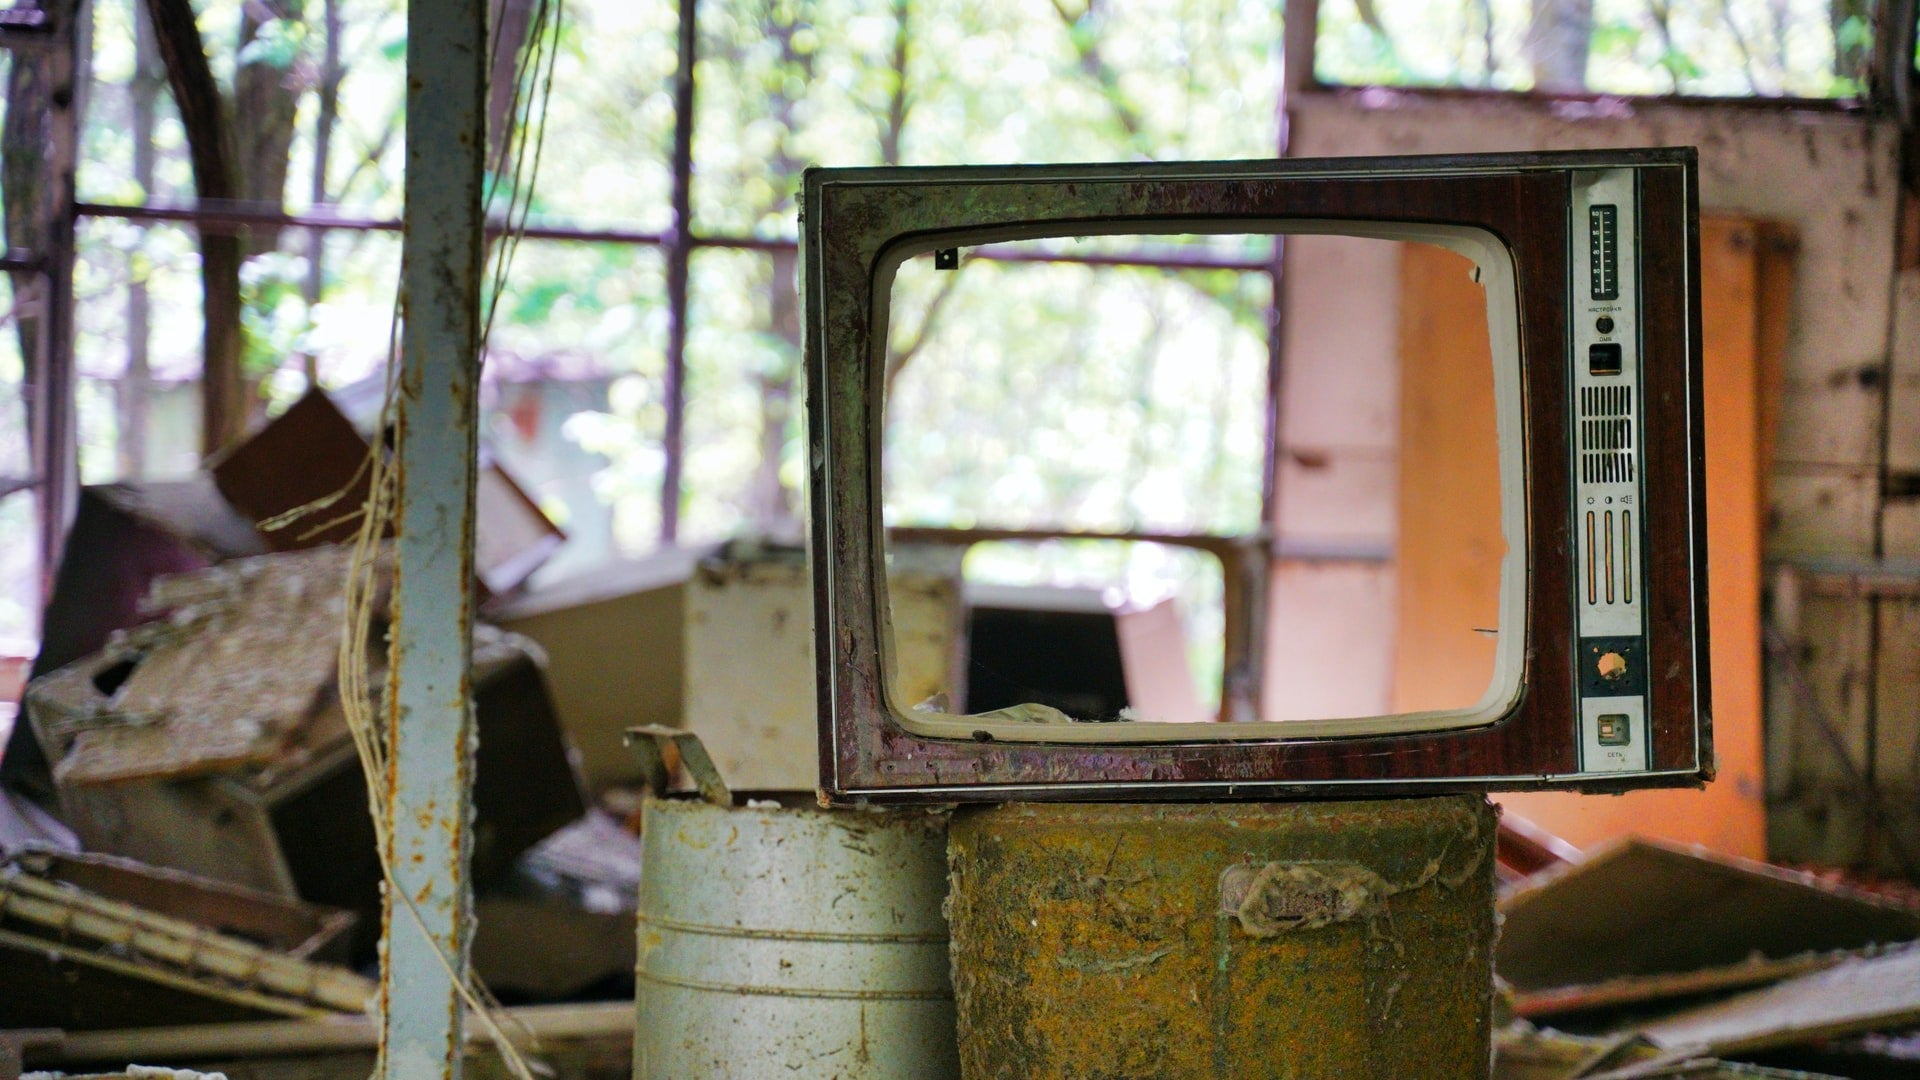 An empty TV frame overlooks a forest growing in Chernobyl, Ukraine.